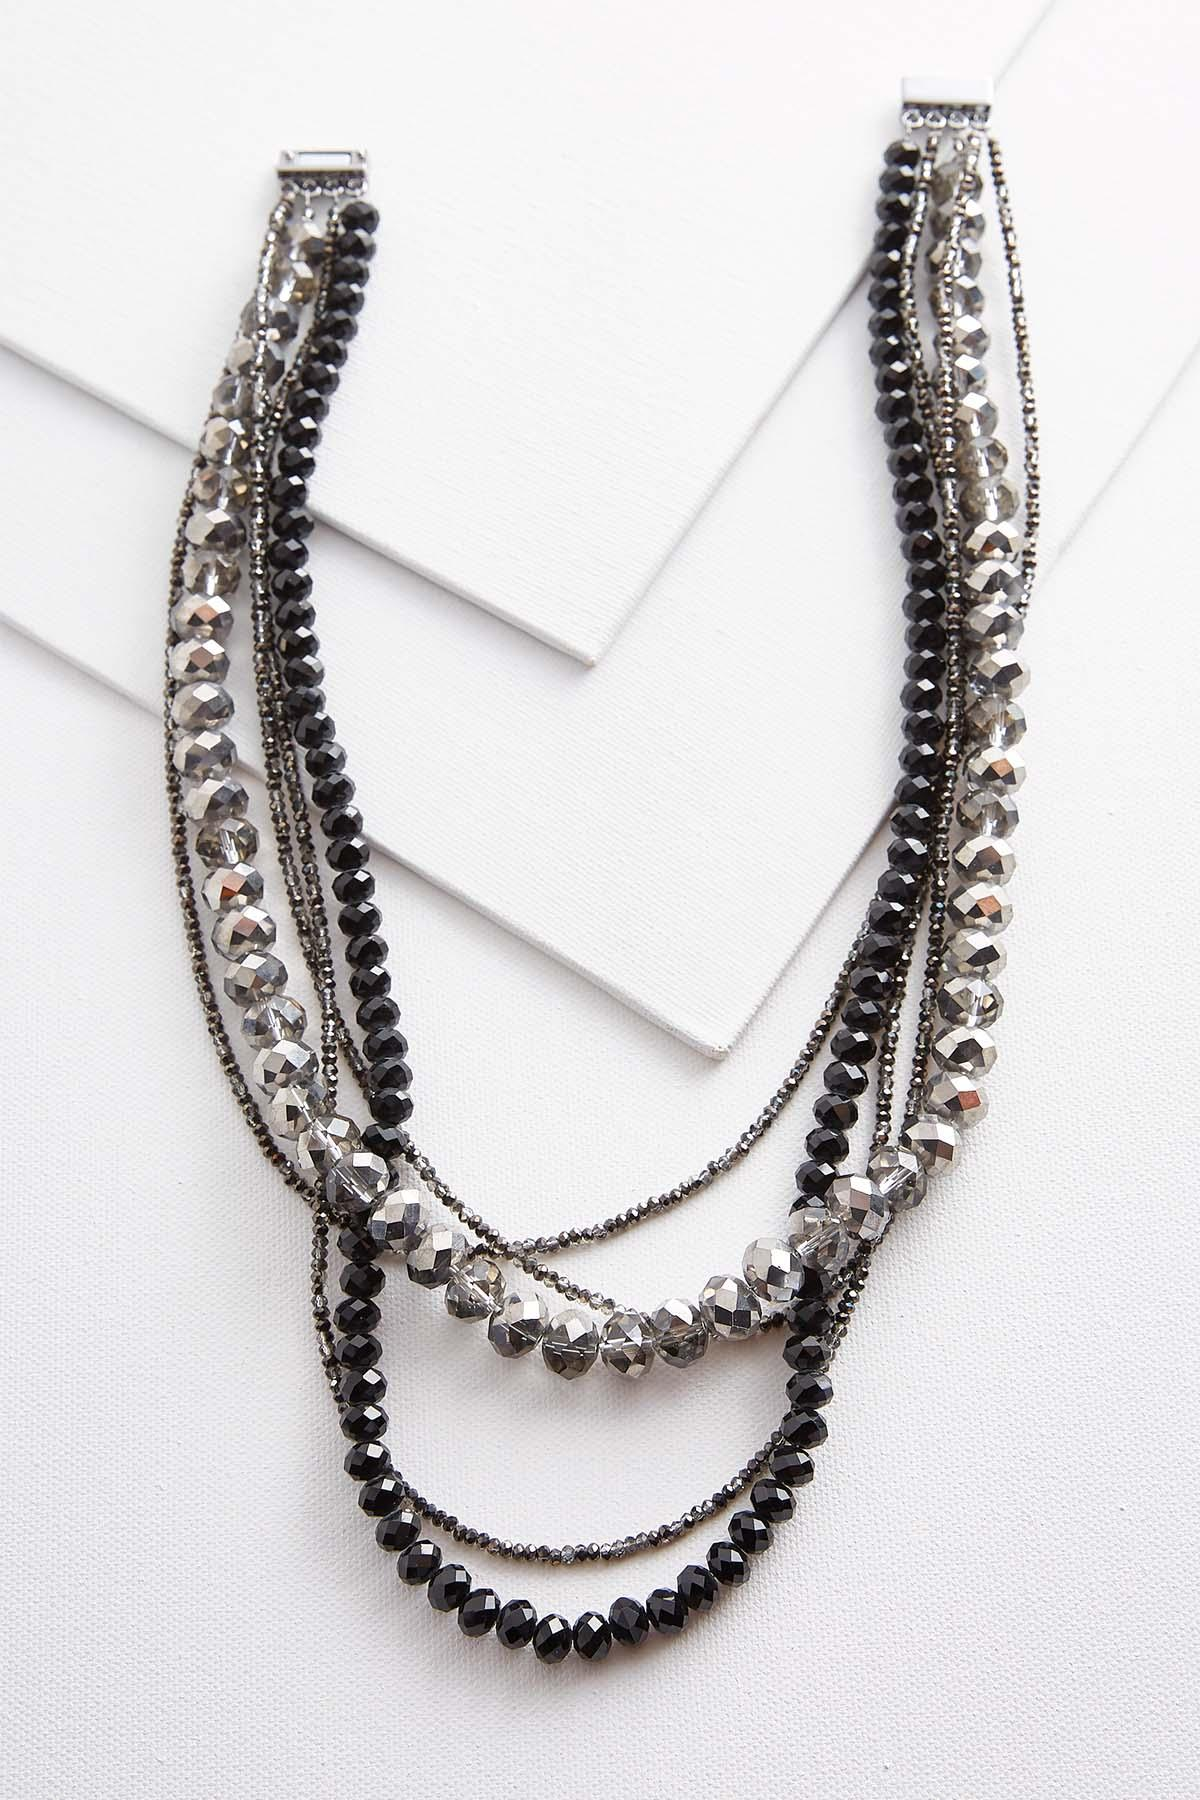 Layered Rondelle Beaded Necklace